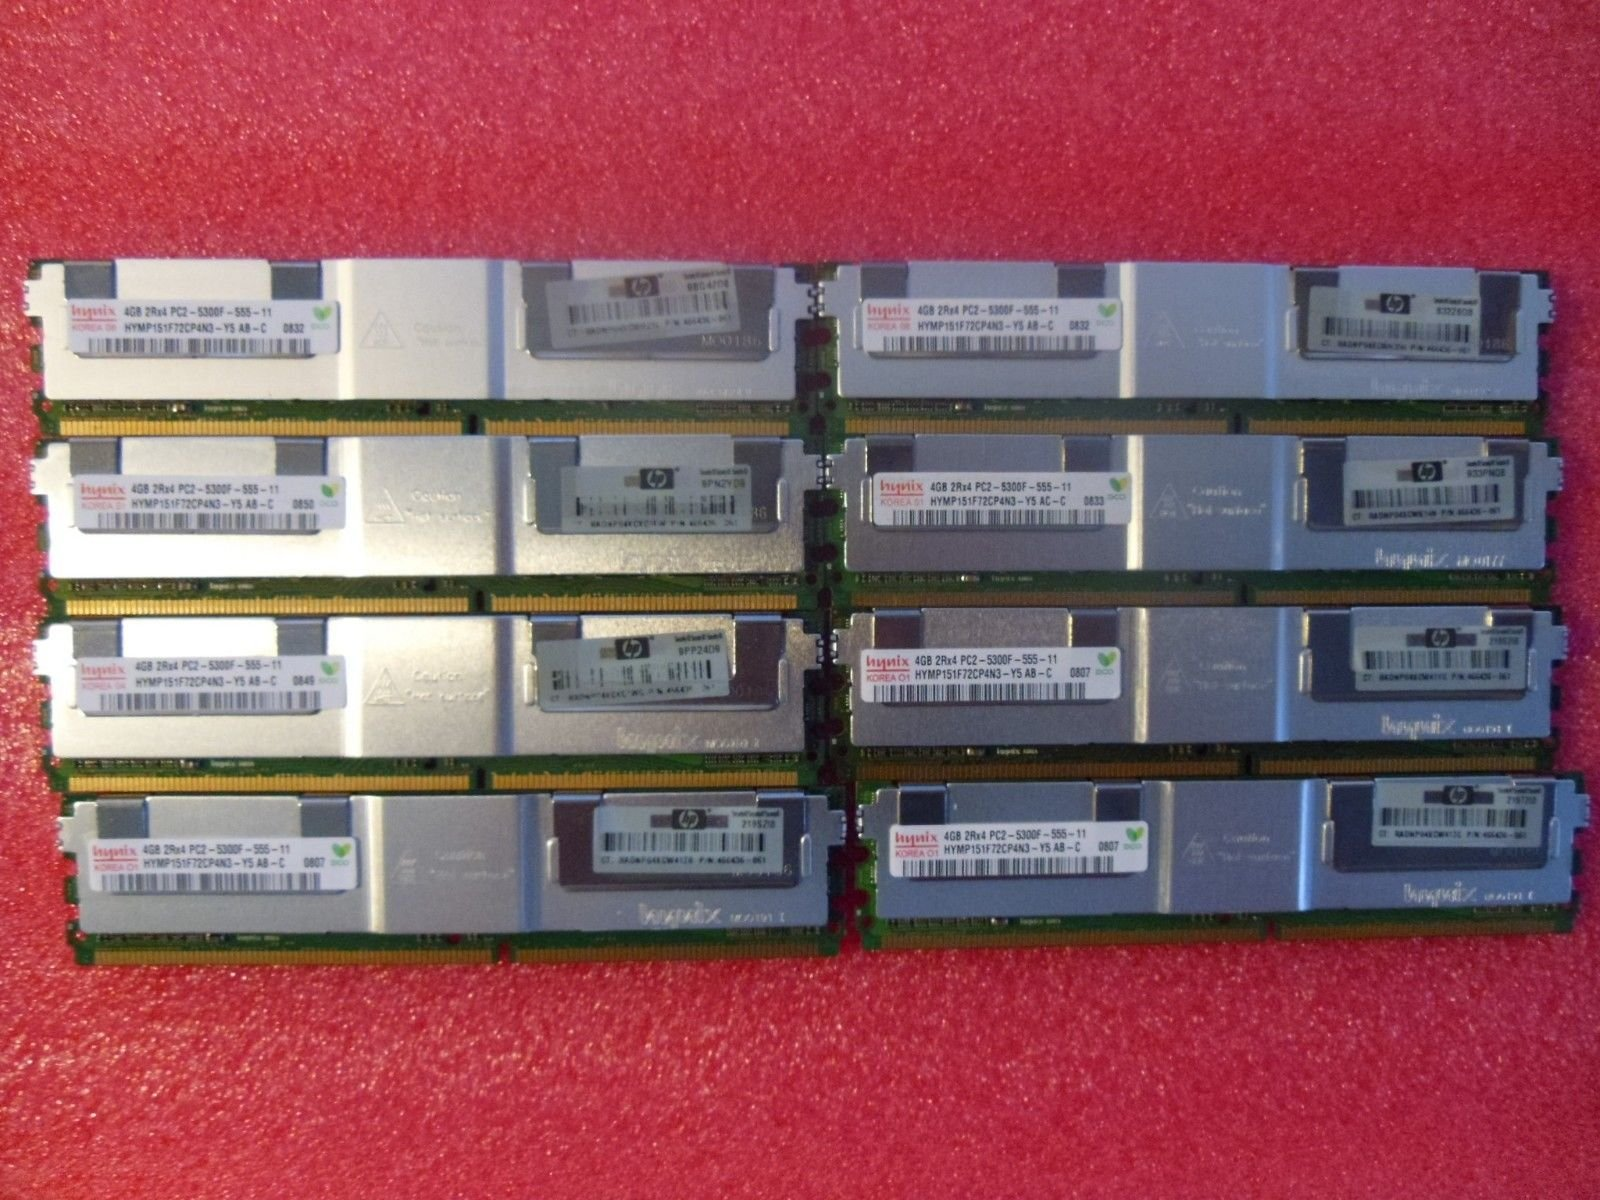 32GB KIT (8 x 4GB) For Dell PowerEdge Series 1900 1950 1950 III 1955 2900 2900 III 2950 2950 III M600 R900. DIMM DDR2 ECC PC2-5300F 667MHz RAM Memory.